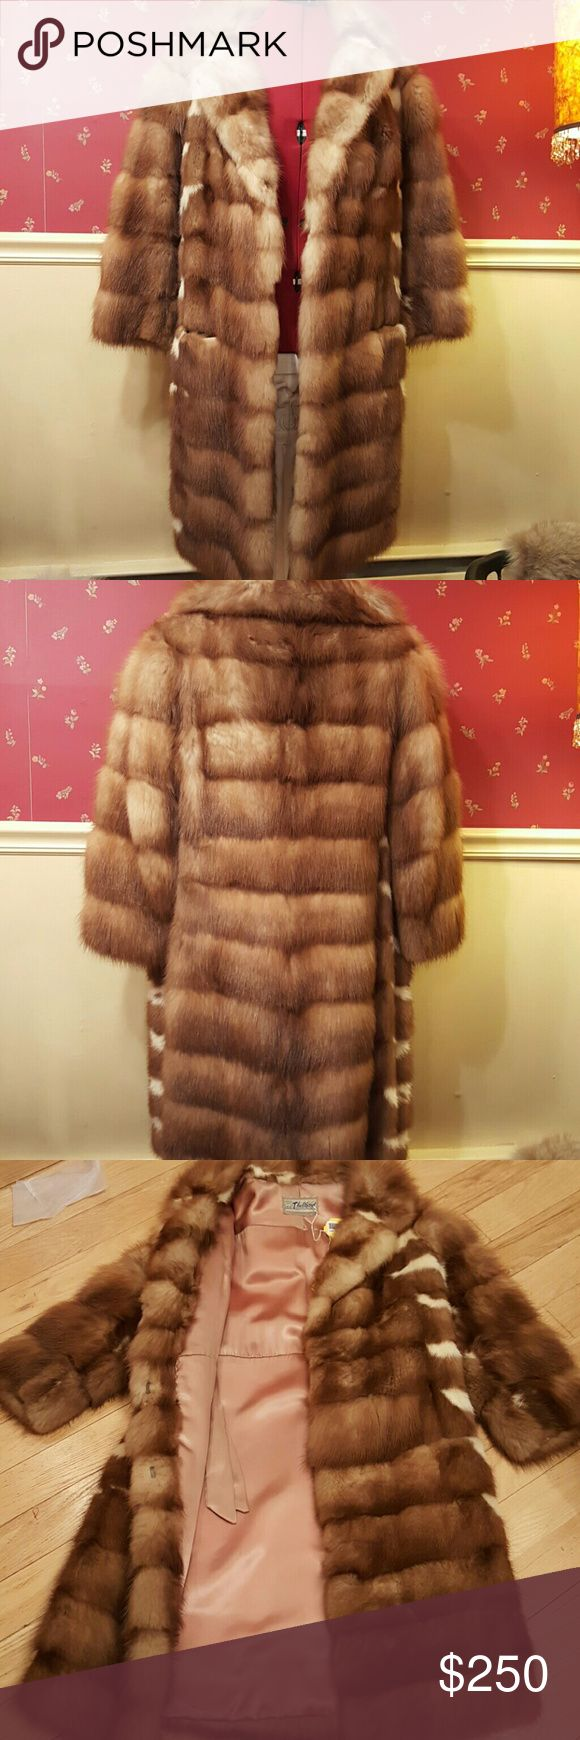 """Stone Martin Mink Totally cool, Aspen Villge vibe to this vintage Stone Marten mink coat. Wear with cowboy boots, jeans and a turtle neck! Size small, 20"""" across back at chest. Probably fit XS as well. Sleeve 20"""" from shoulder seam. Seems to me to be a bit of a petite size. Three working hooks in front. Two slash pockets in front. Stone Marten has cool cream colored sections to the mink. Jackets & Coats"""